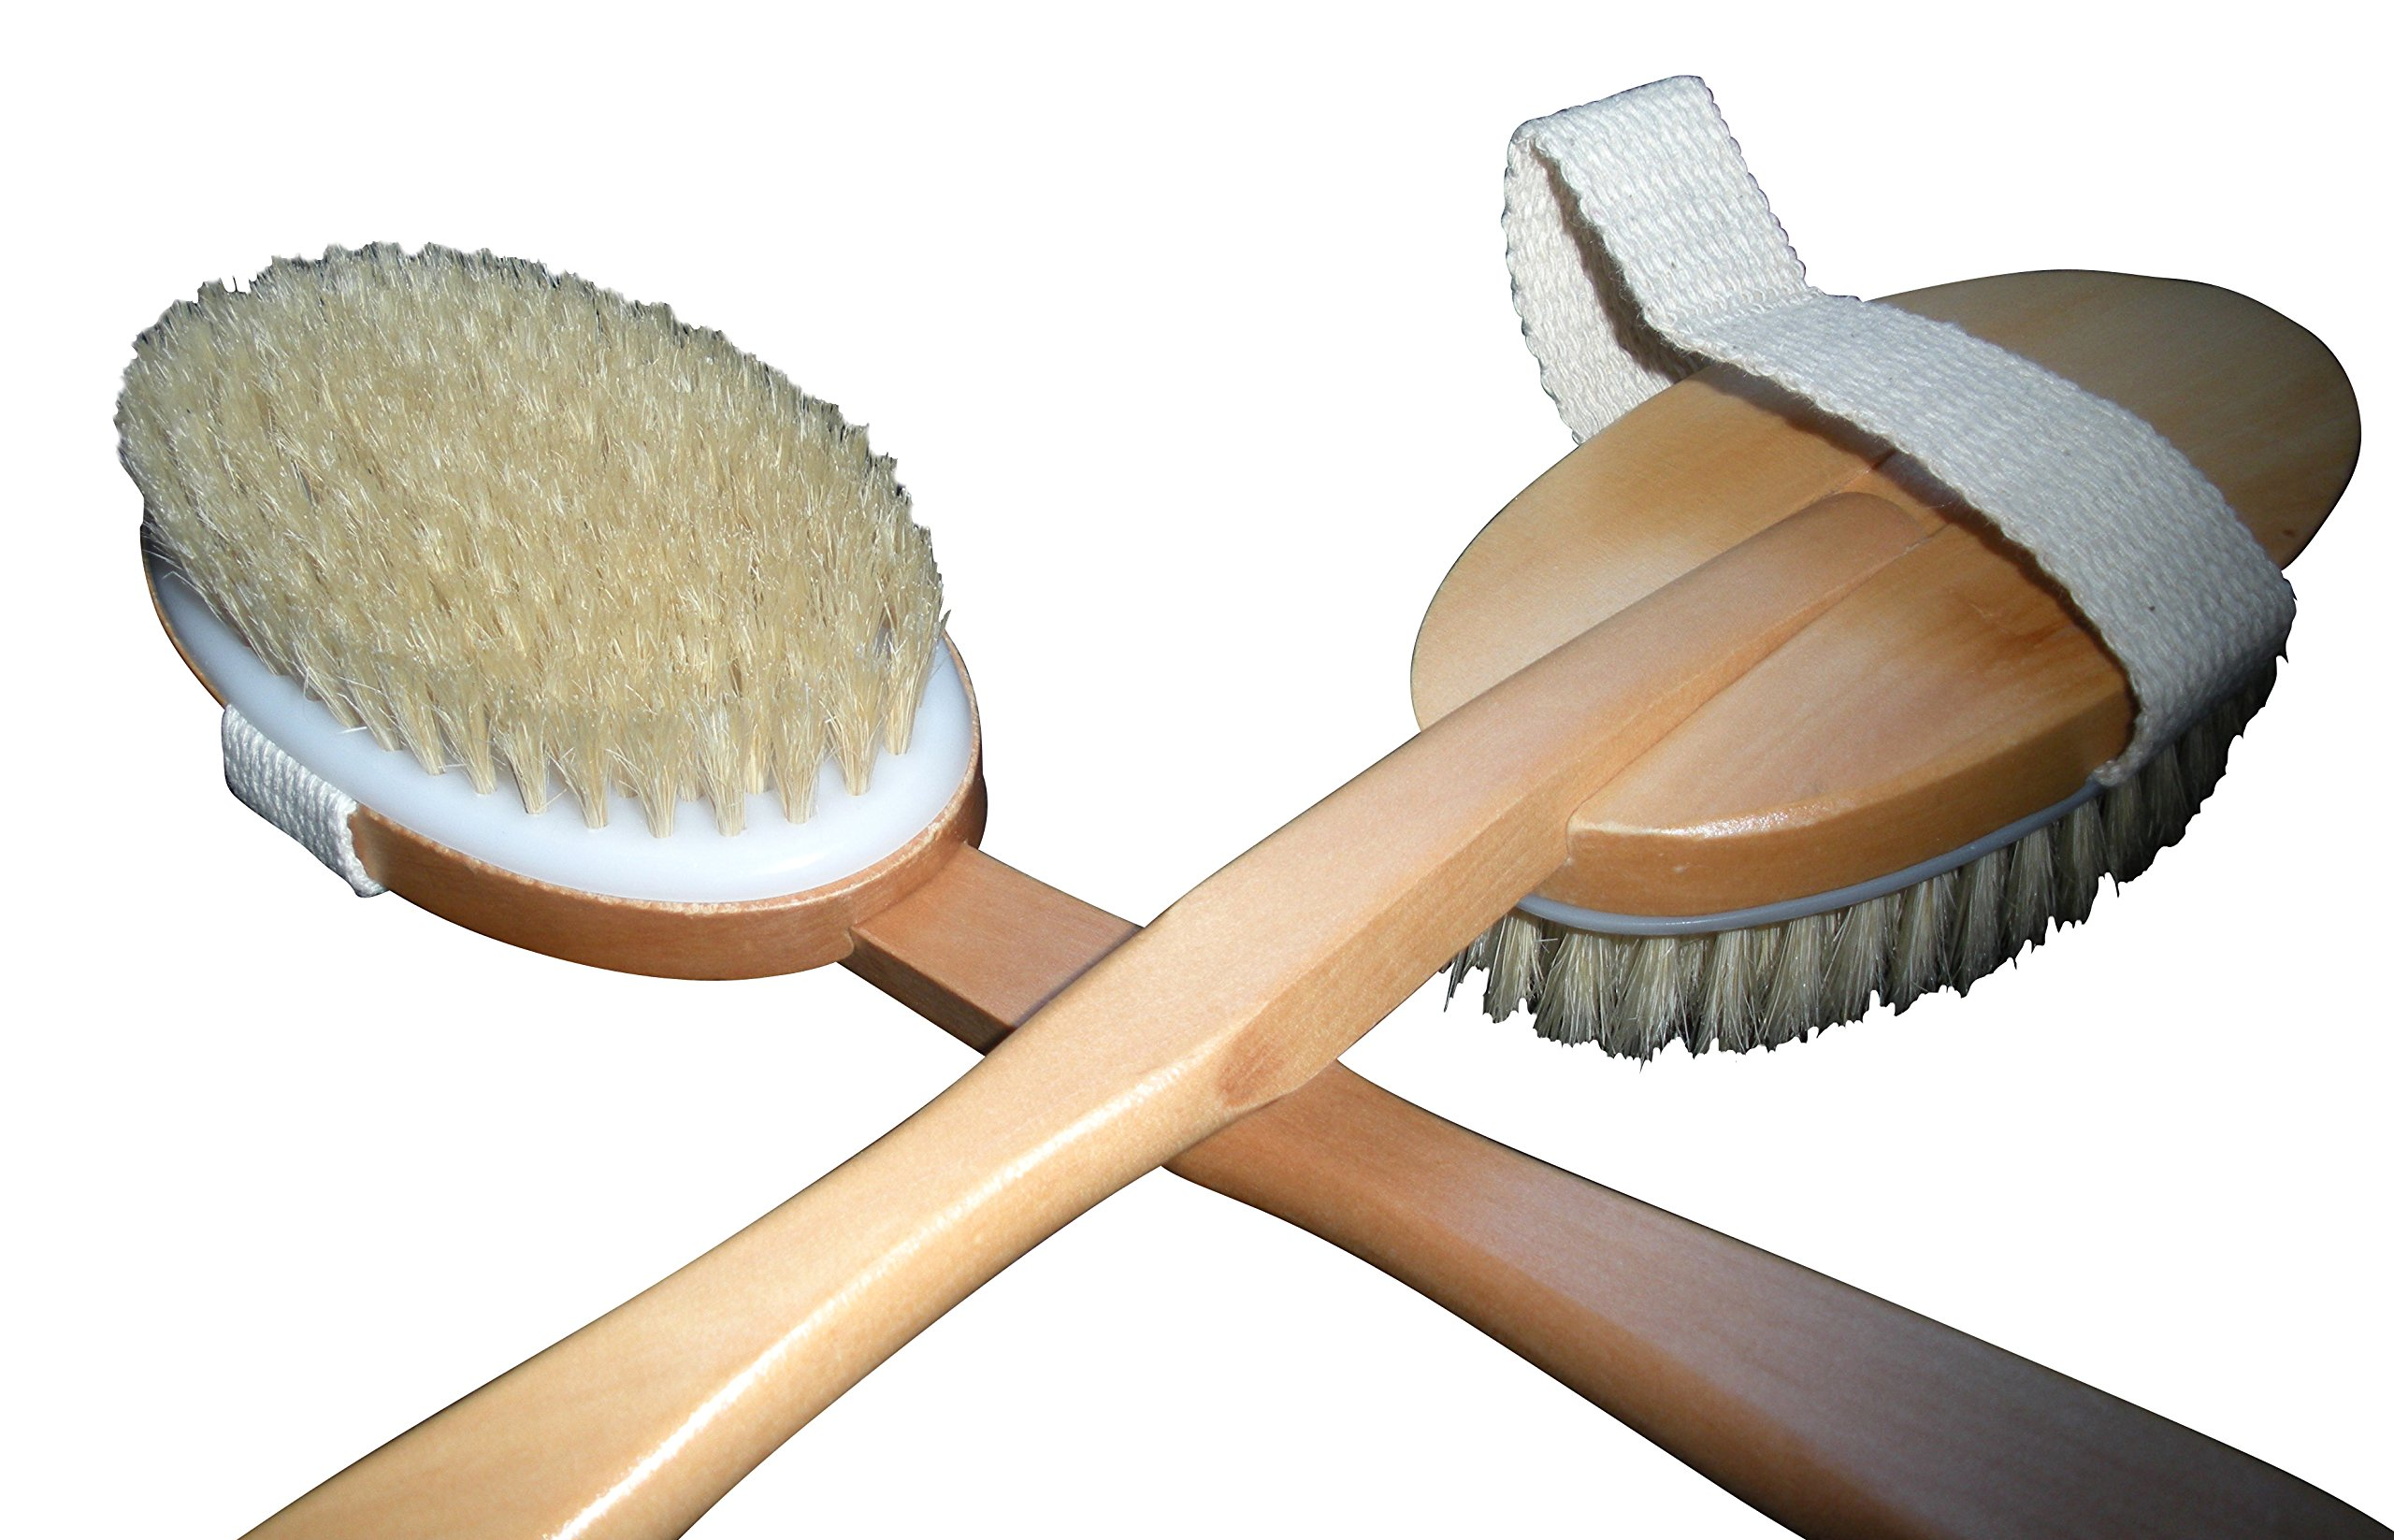 3 Brushes/Set Touch Me 100% Natural Boar Bristle detachable Long Handle Wooden Dry Bath Body Back Brush, Contour Handle Dry Body Brush and Facial Complexion Brush, Premium Quality, Perfect Spa Gift by Touch Me (Image #3)